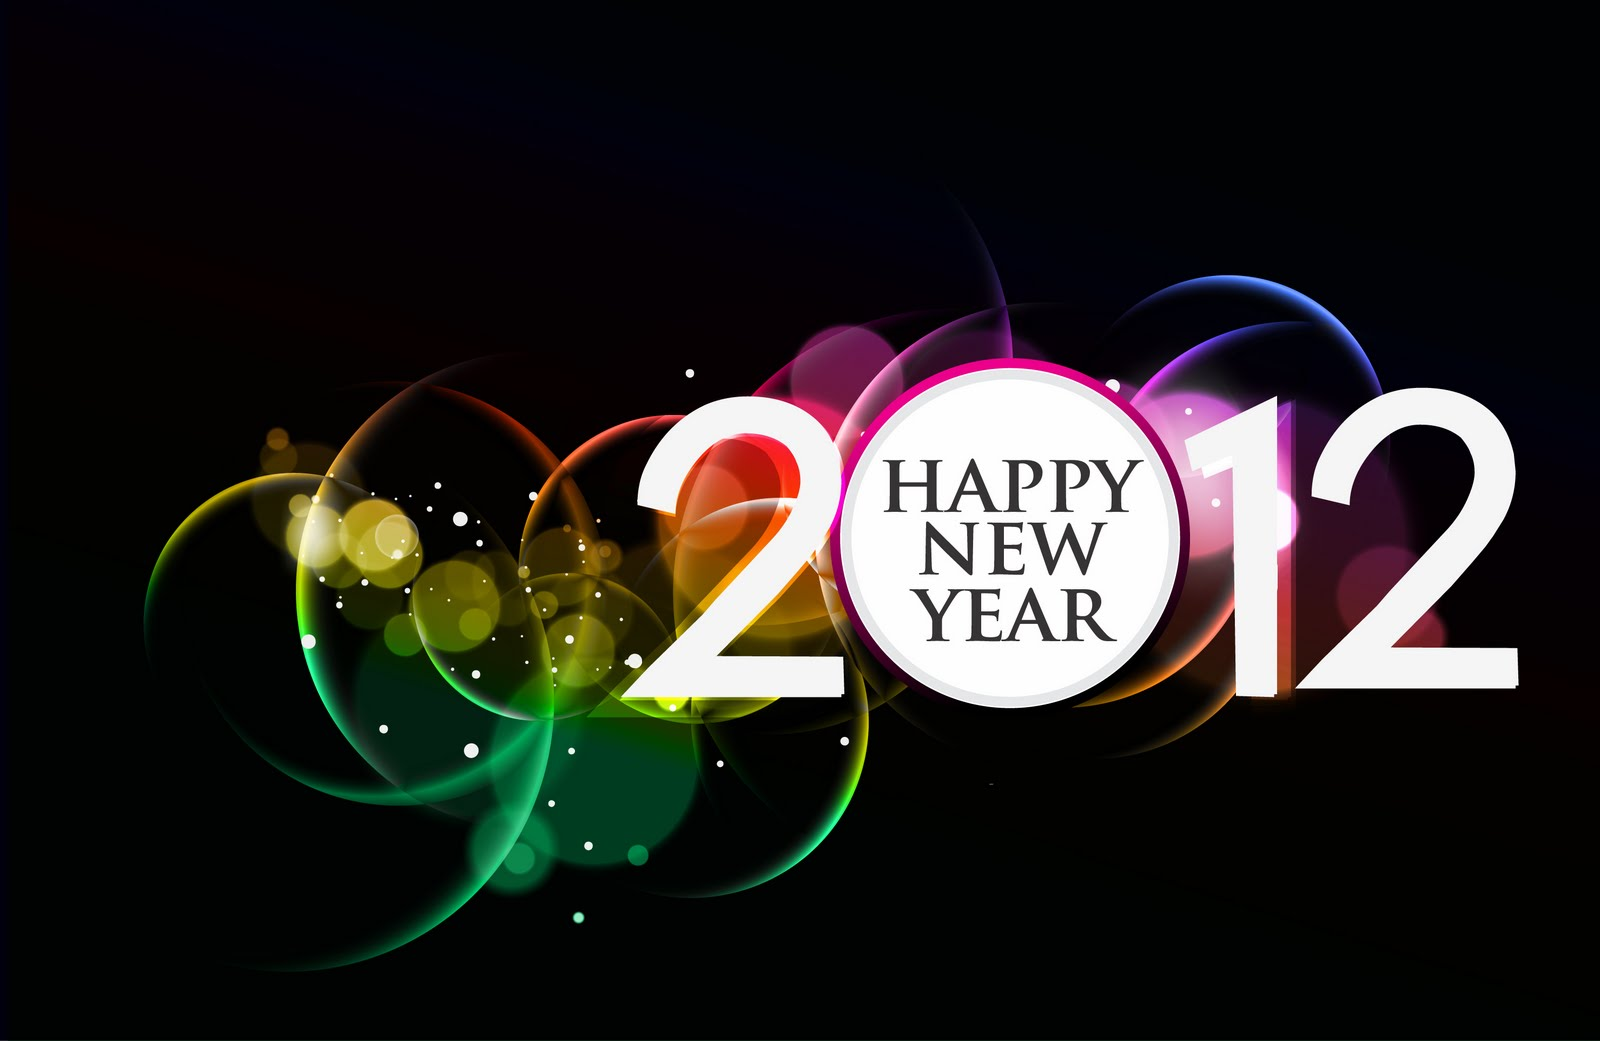 Happy New Year 2012 Wallpaper. 1600 x 1041.Happy New Year Animated Gif